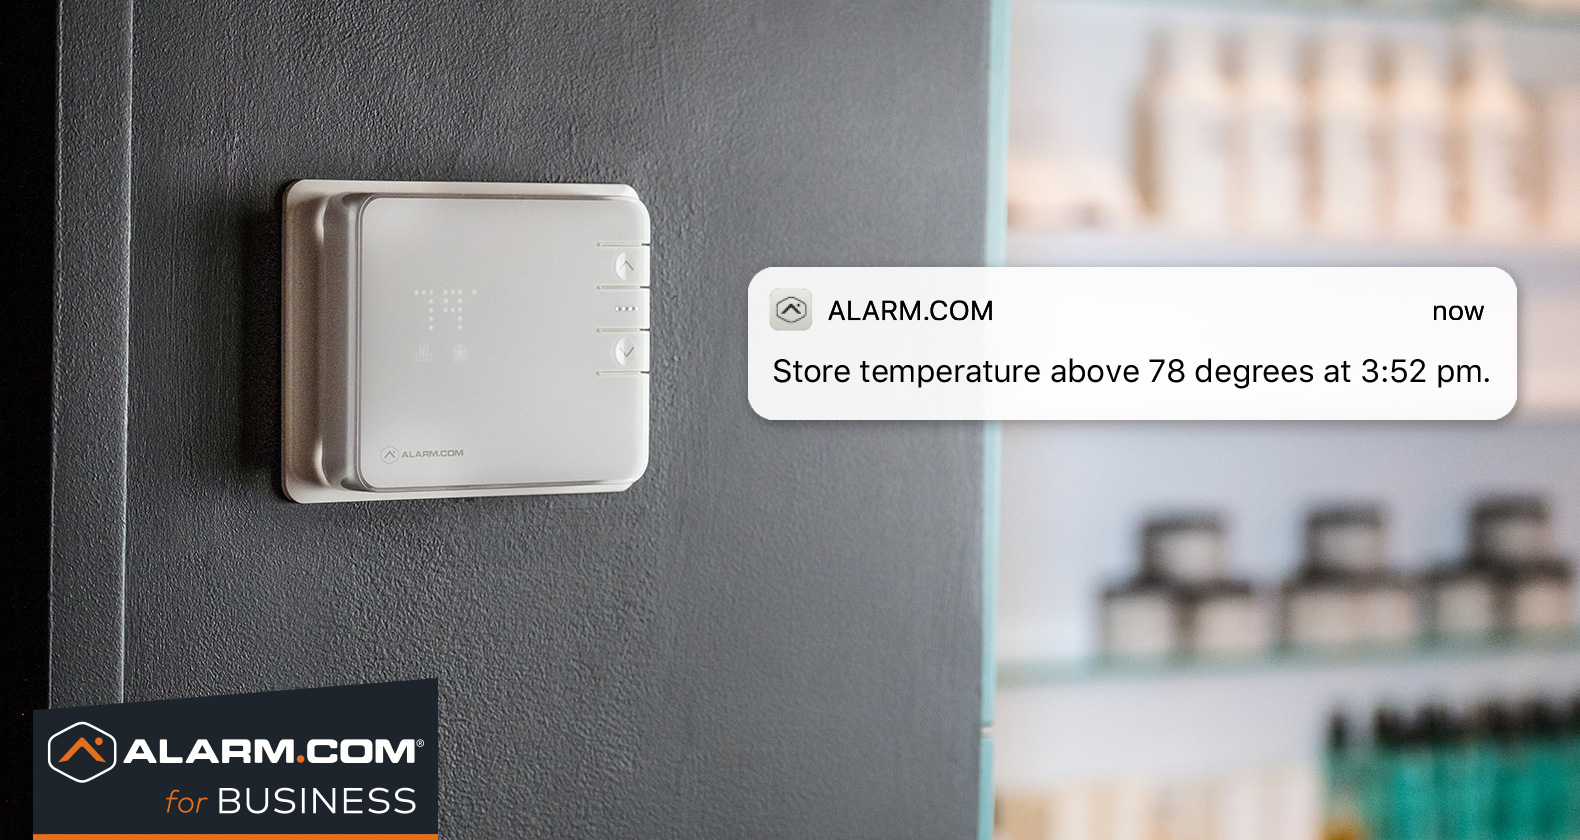 business-smart-thermostat-commercial-2.jpg